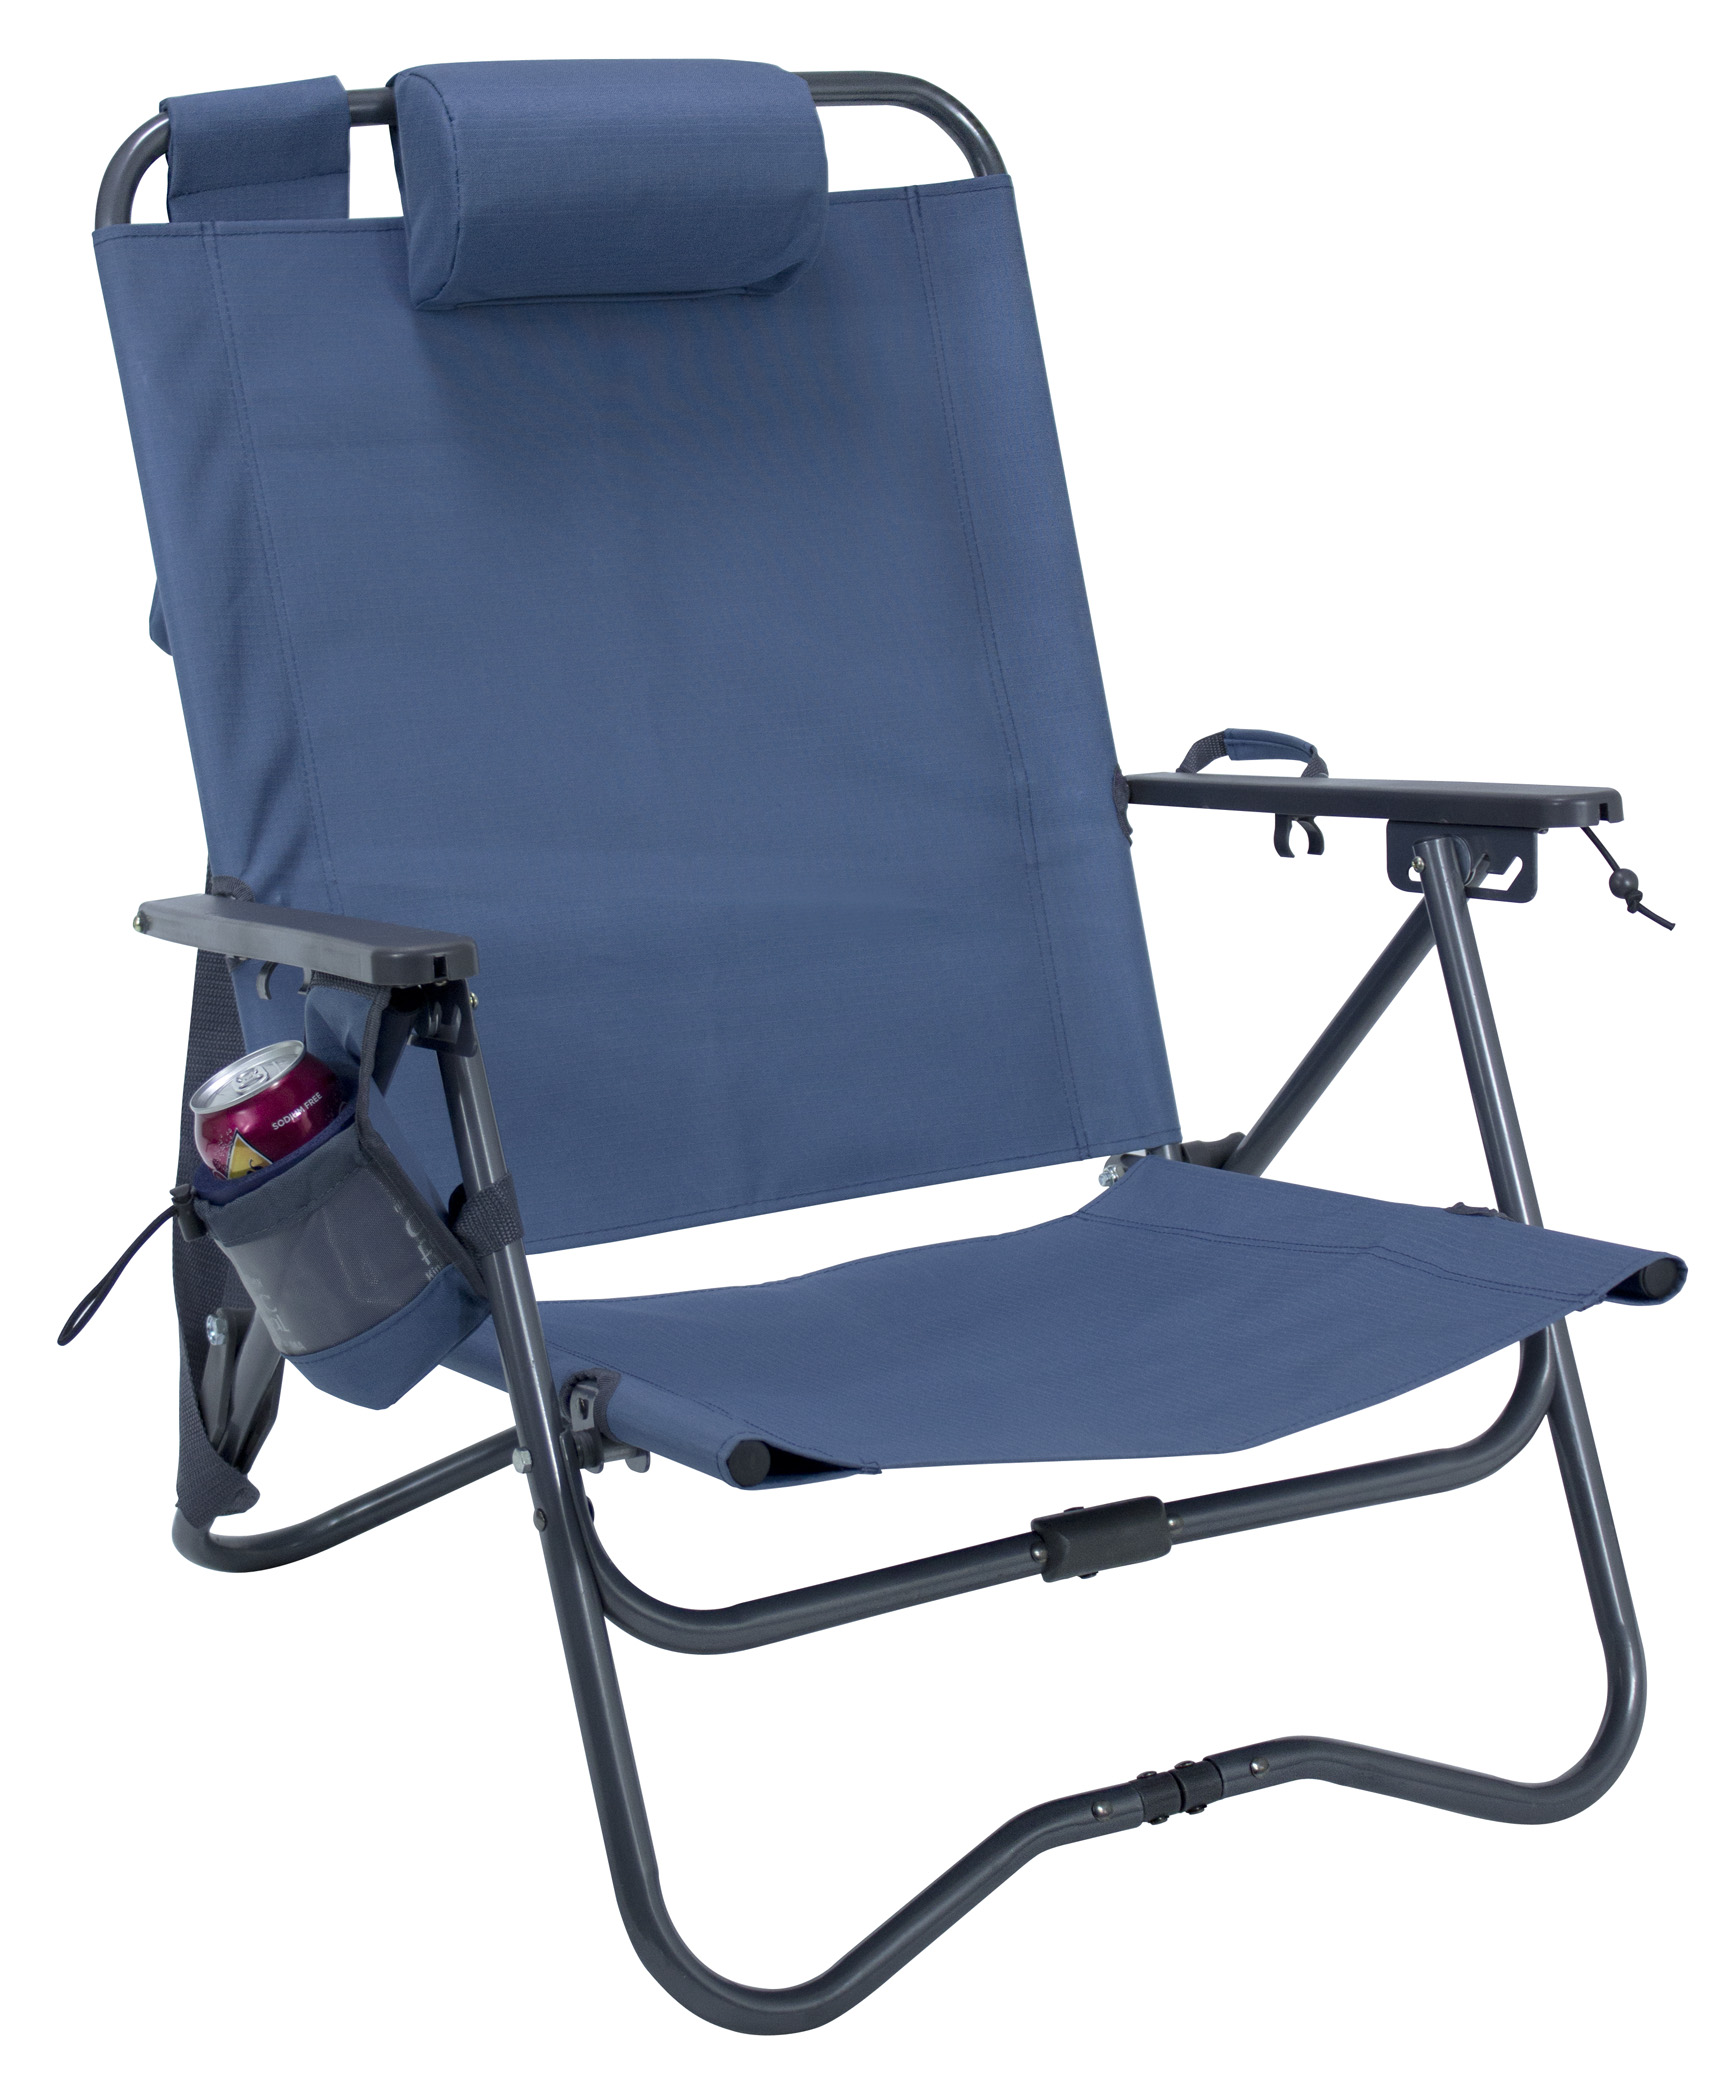 folding camping chairs bi-fold camp chair by gci outdoor SOHFEQG